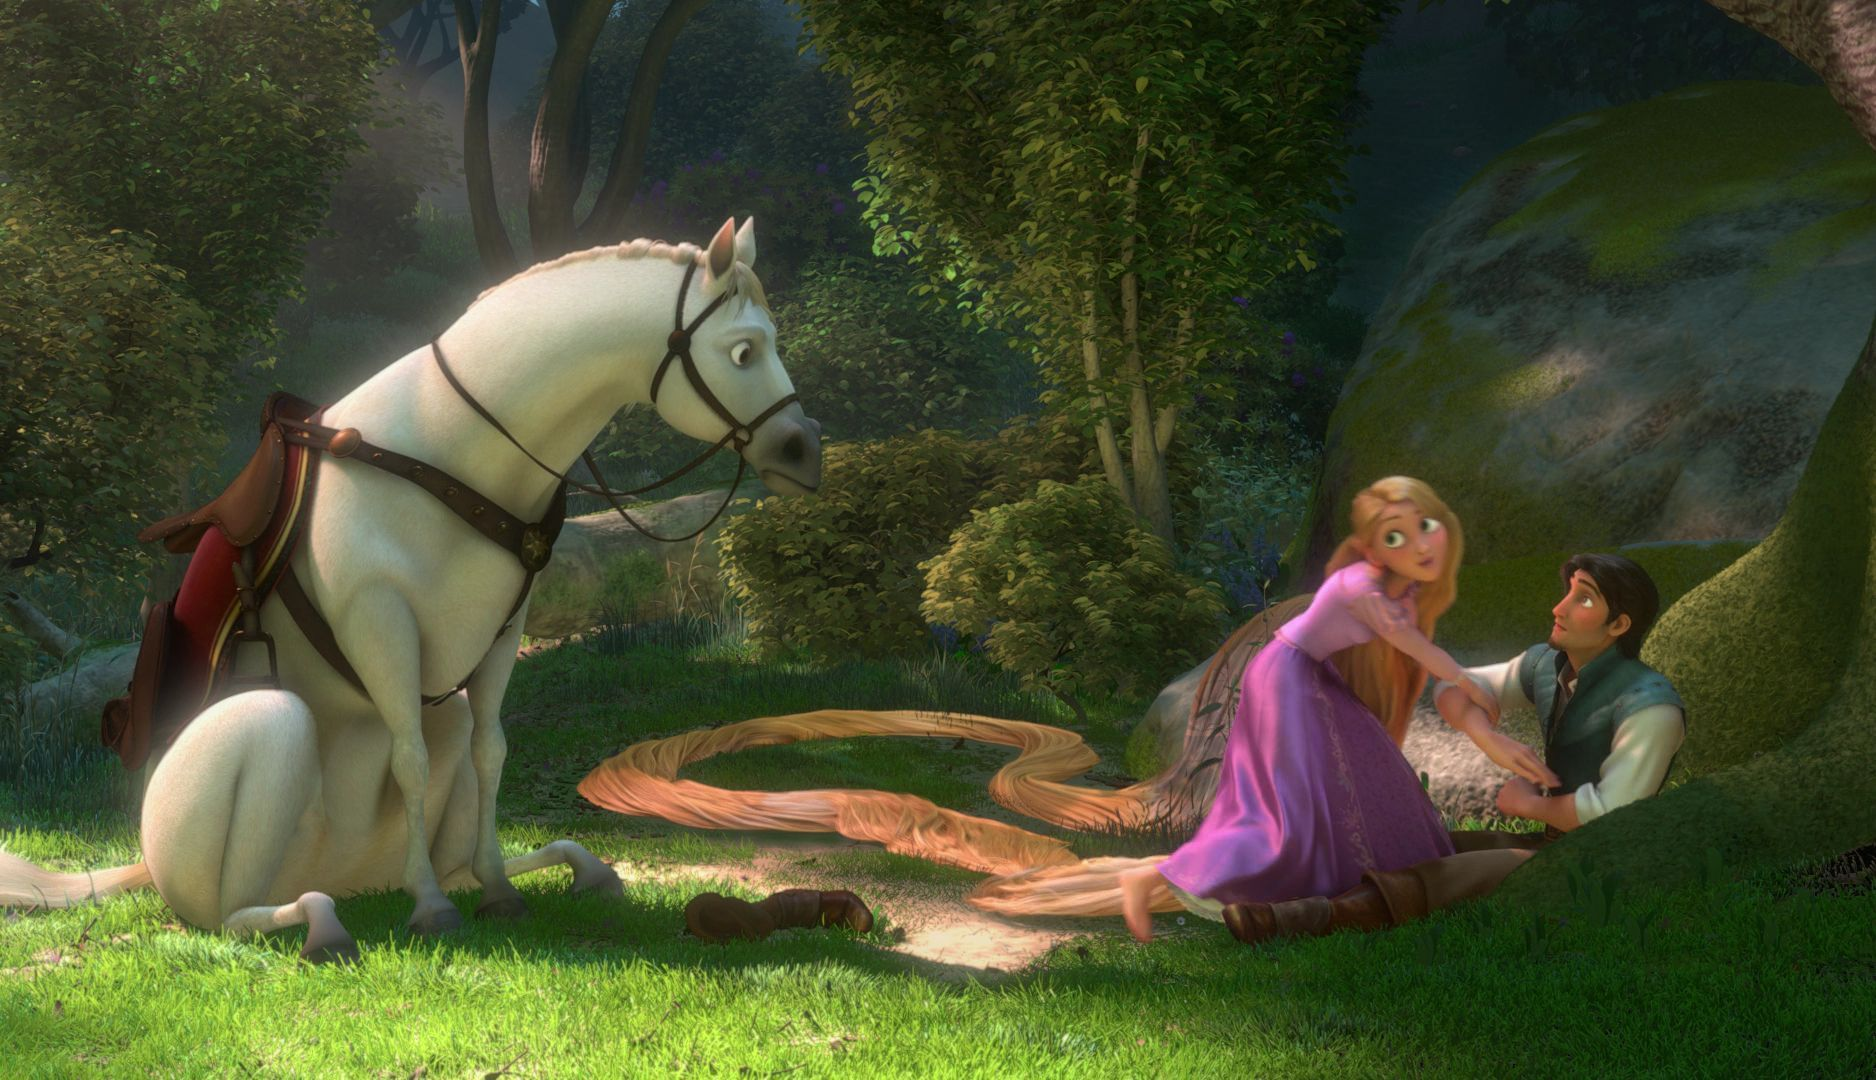 disney tangled film analysis Unraveling tangled disney's tangled delivers some of the best 3d character animation  at times we see the film from rapunzel's viewpoint.